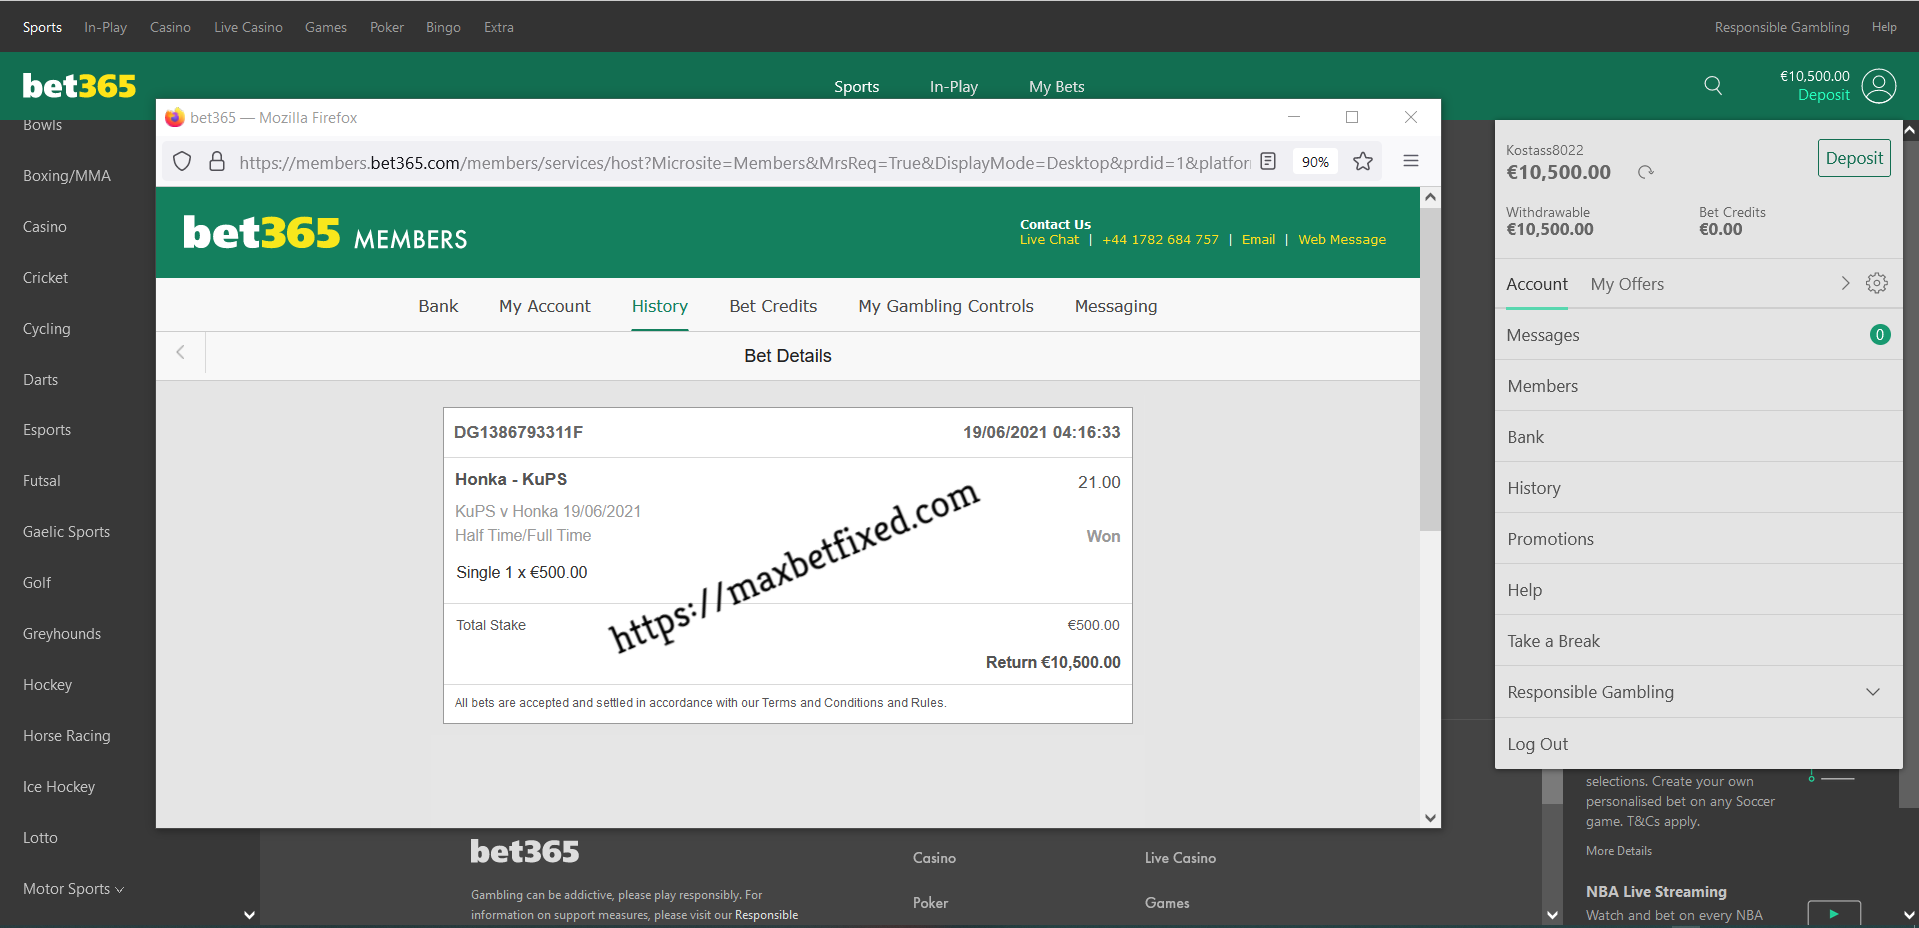 For register how fixed matches to FIXED MATCHES